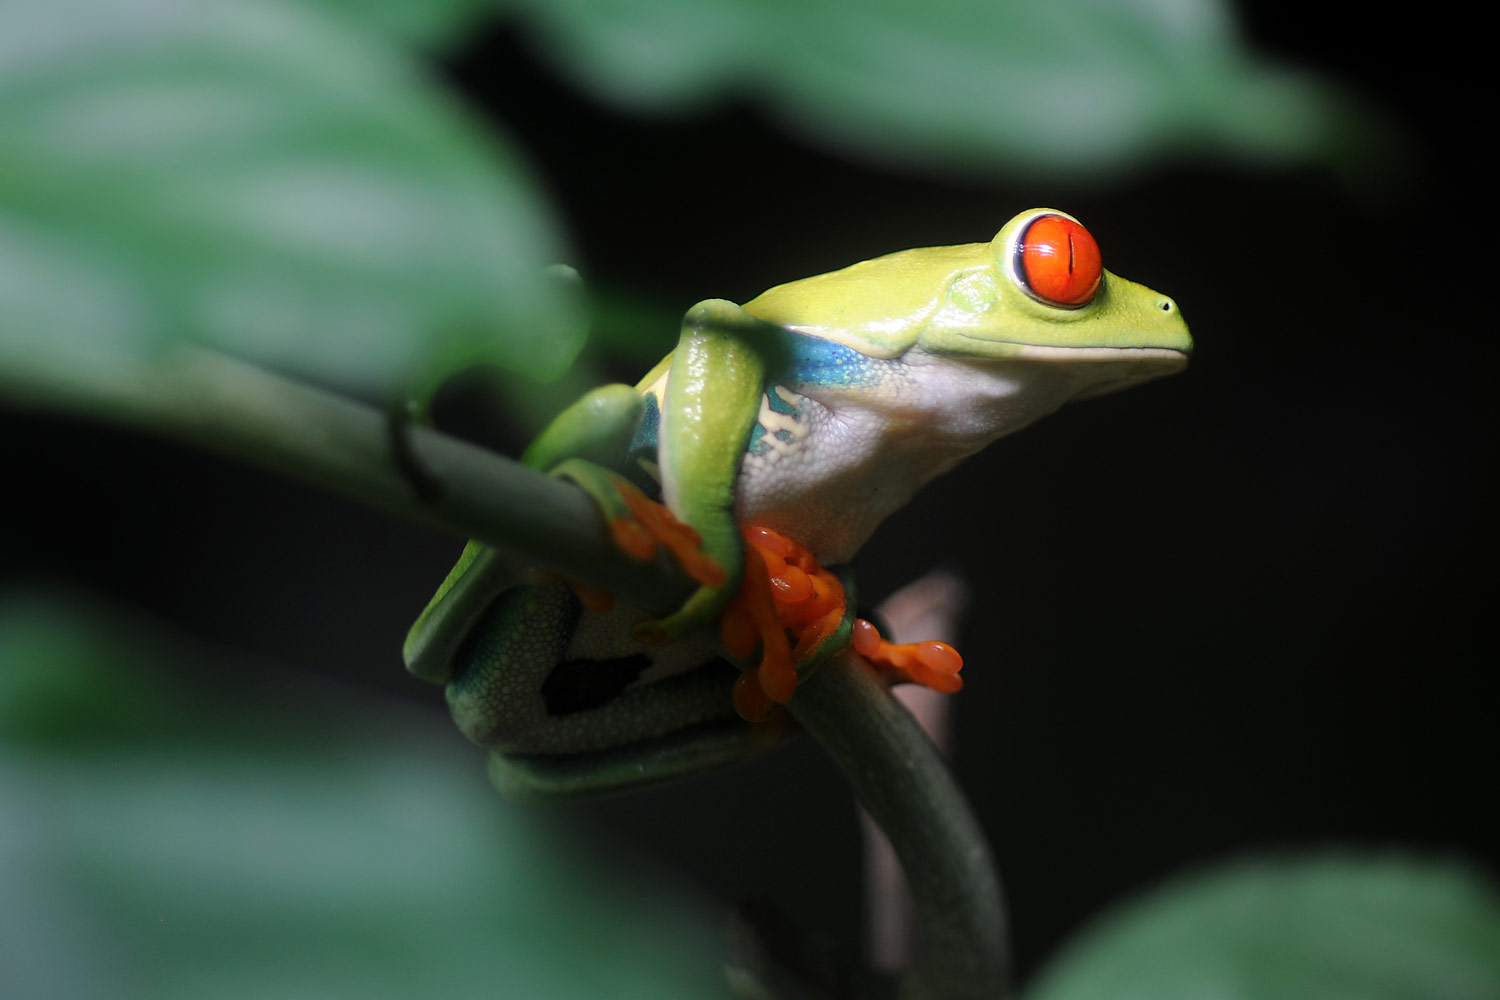 Red Eyed Tree Frog, Monteverde Frog Museum, Costa Rica